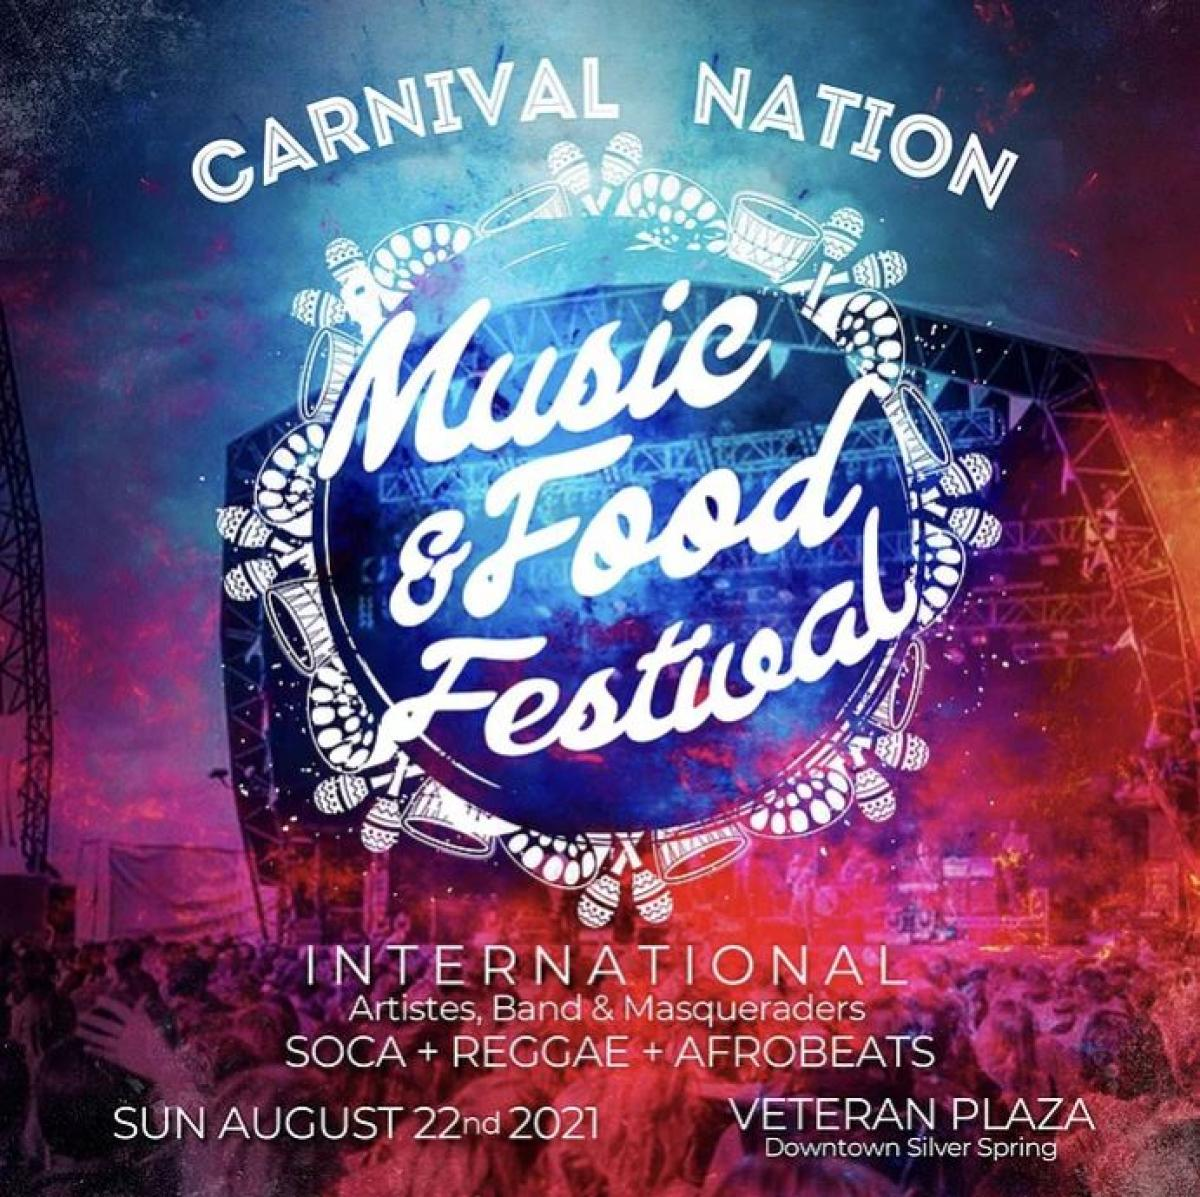 Carnival Nation: Food & Music Festival flyer or graphic.